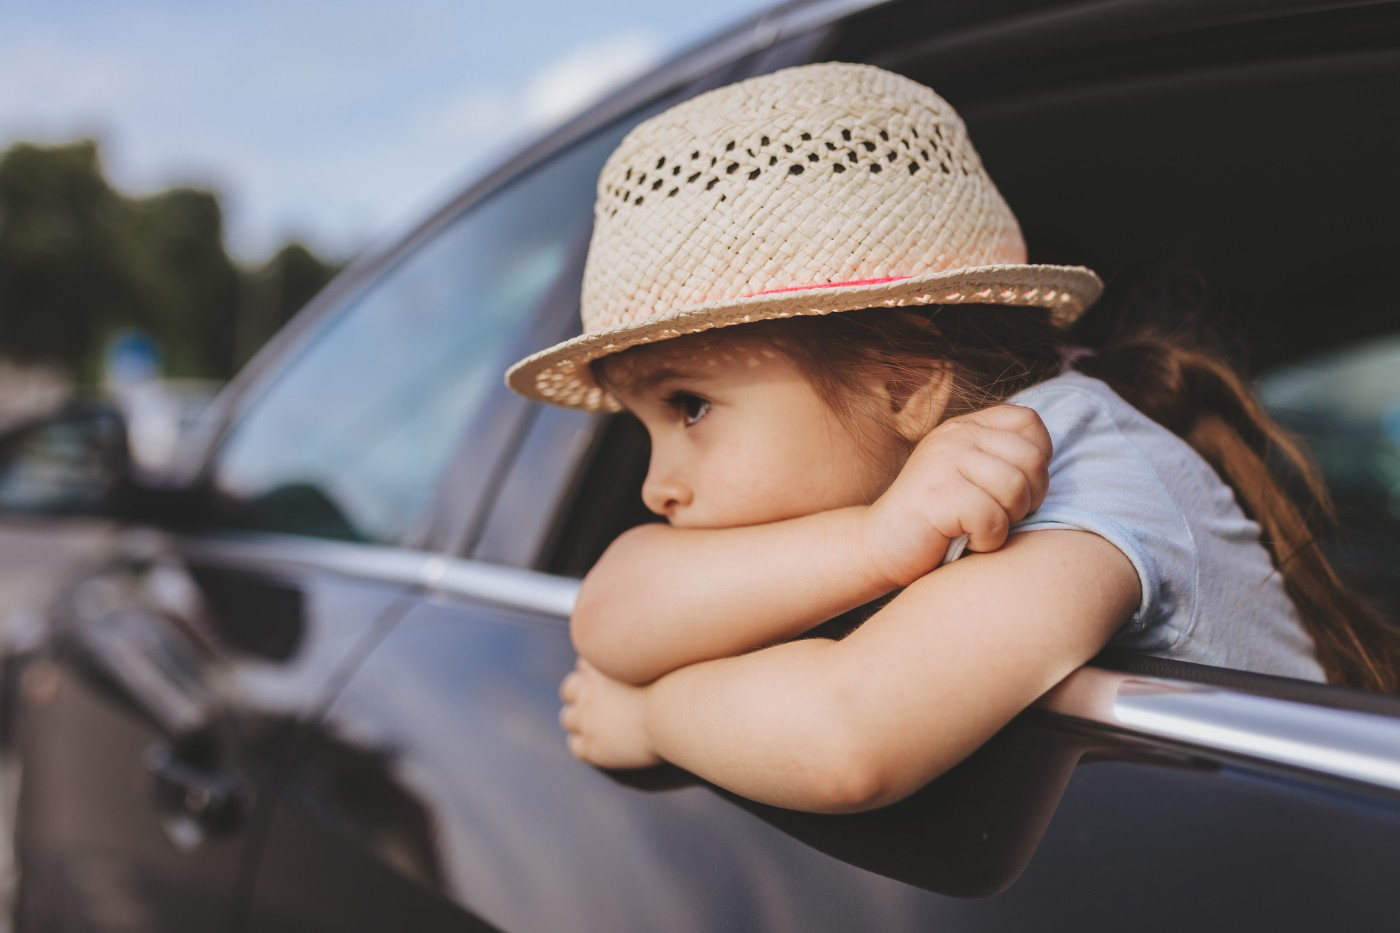 https://tickertapecdn.tdameritrade.com/assets/images/pages/md/Young child riding in a car: Are we there yet? Cryptocurrencies and diversification